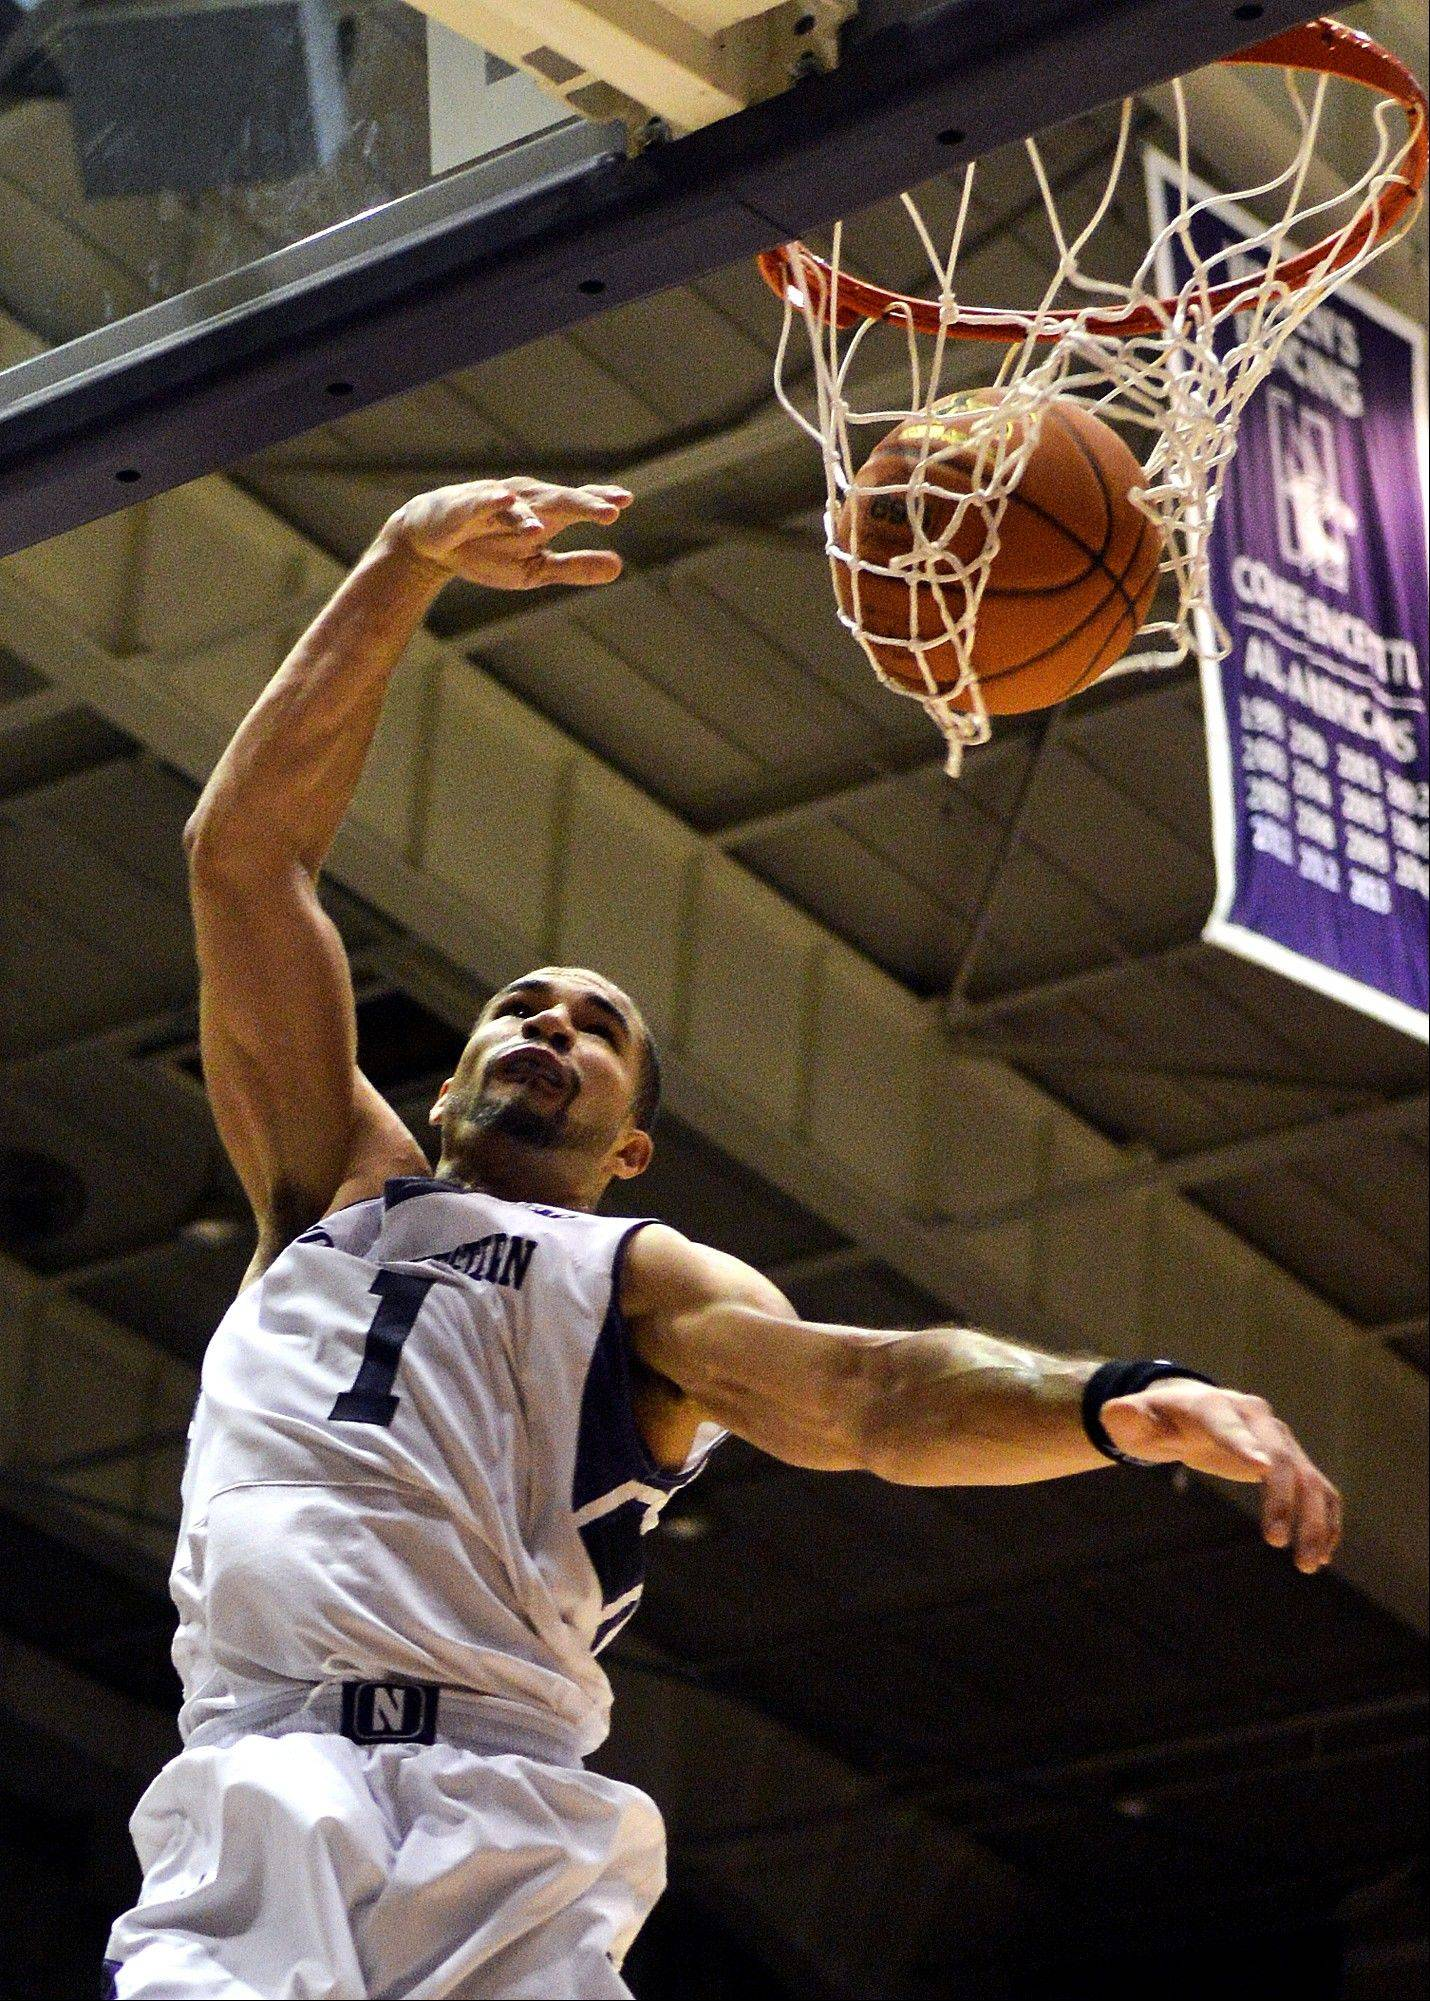 After rehabbing his shoulder last season, Northwestern's Drew Crawford shows he still has some power in his game. The 6-5 redshirt senior has drawn high praise from head coach Chris Collins for his veteran leadership.